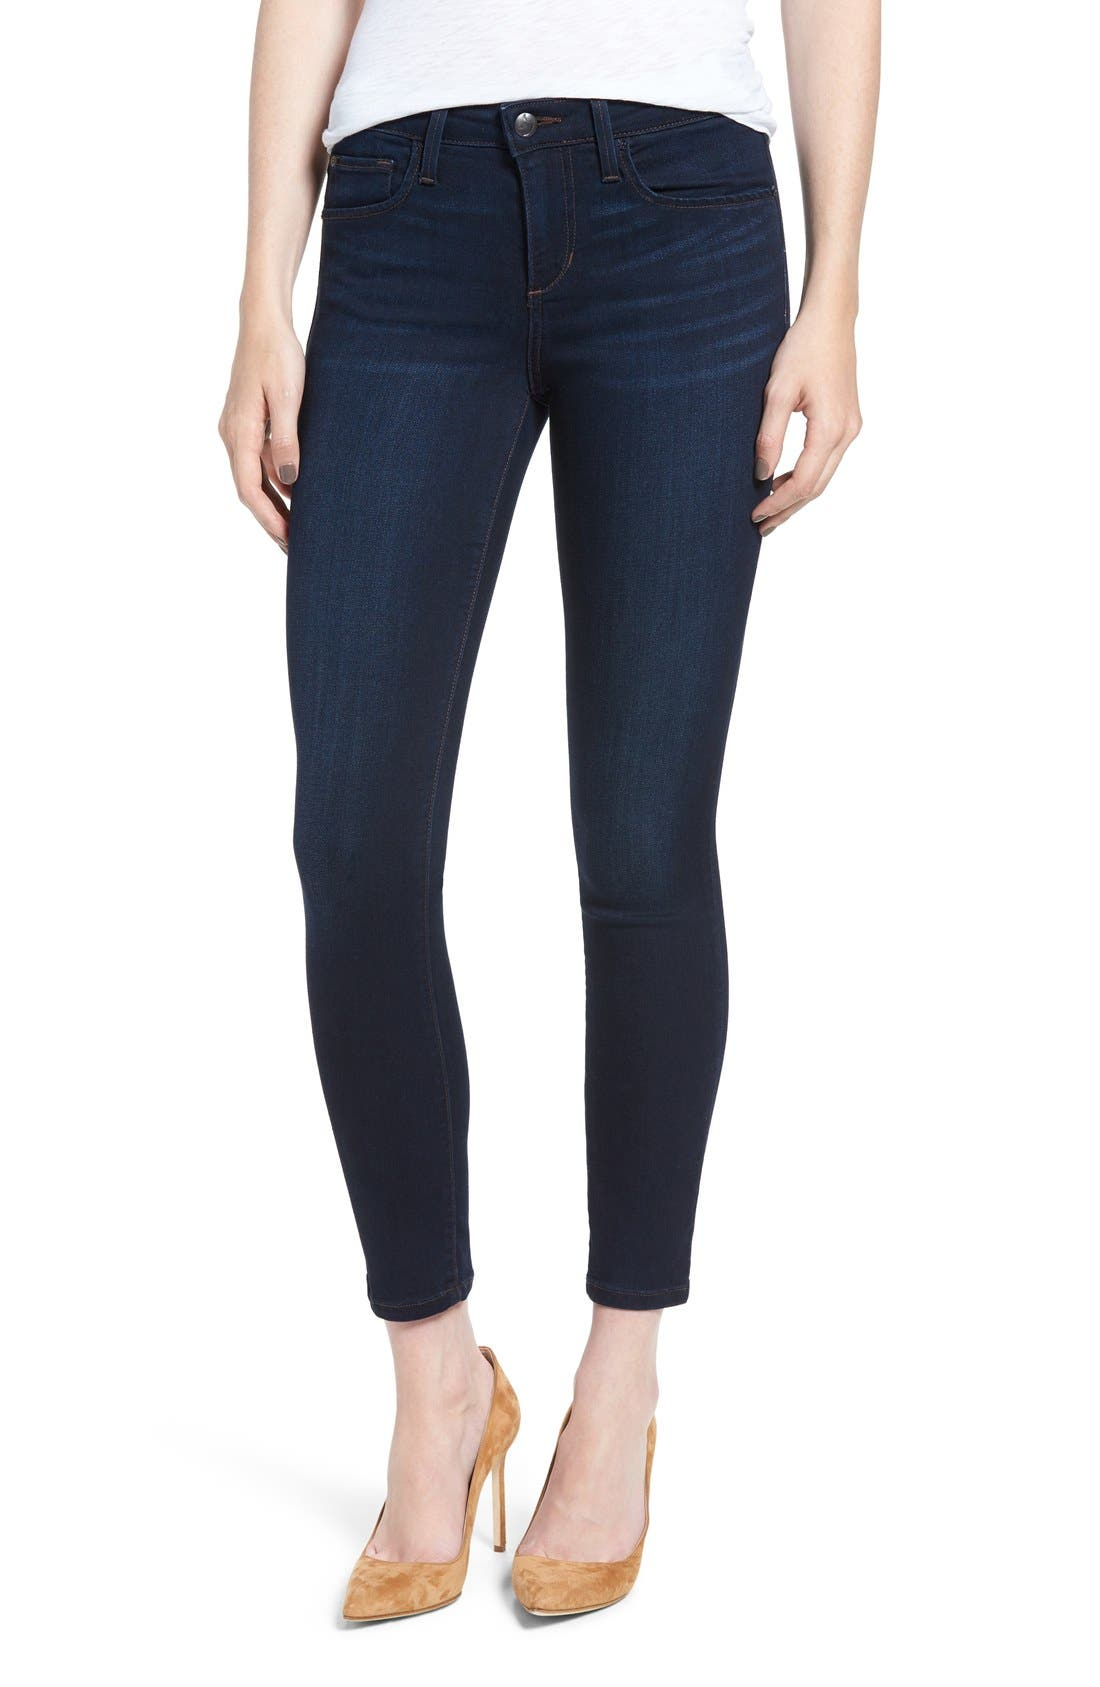 Alternate Image 1 Selected - Joe's 'Icon' Ankle Skinny Jeans (Selma)